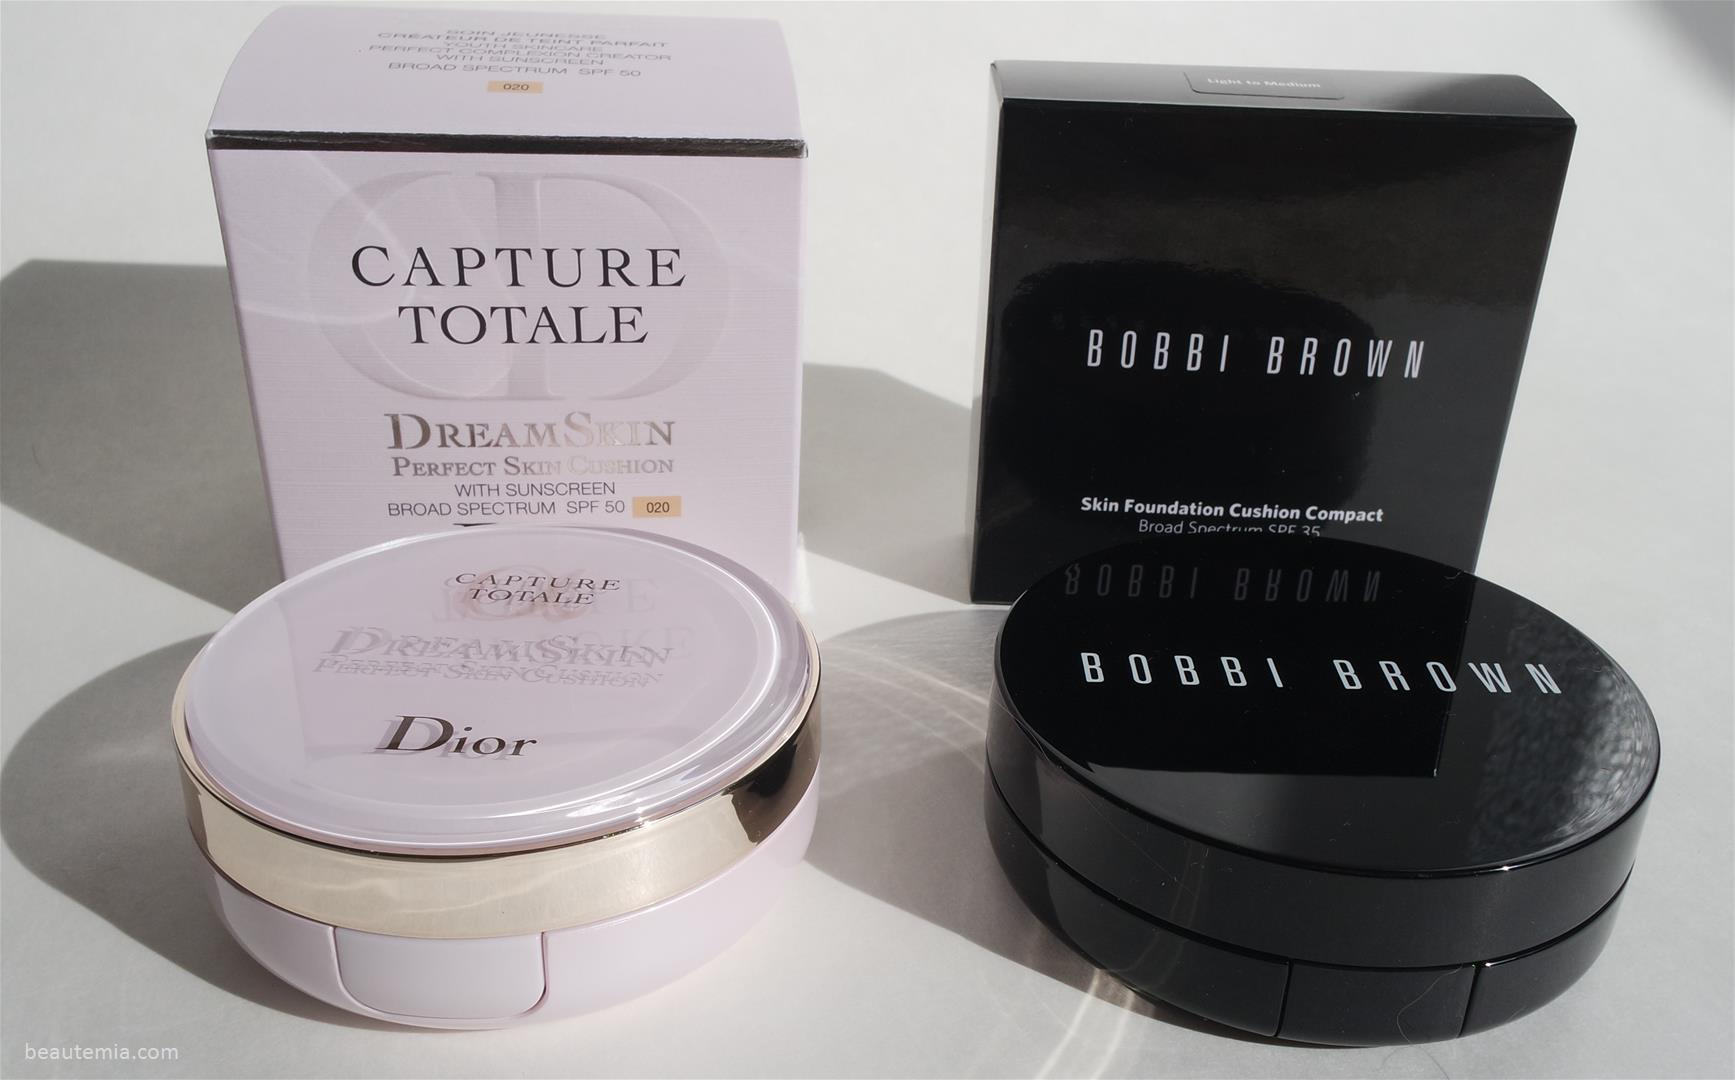 Review Bobbi Brown Skin Foundation Cushion Compact Spf 35 Vs Dior